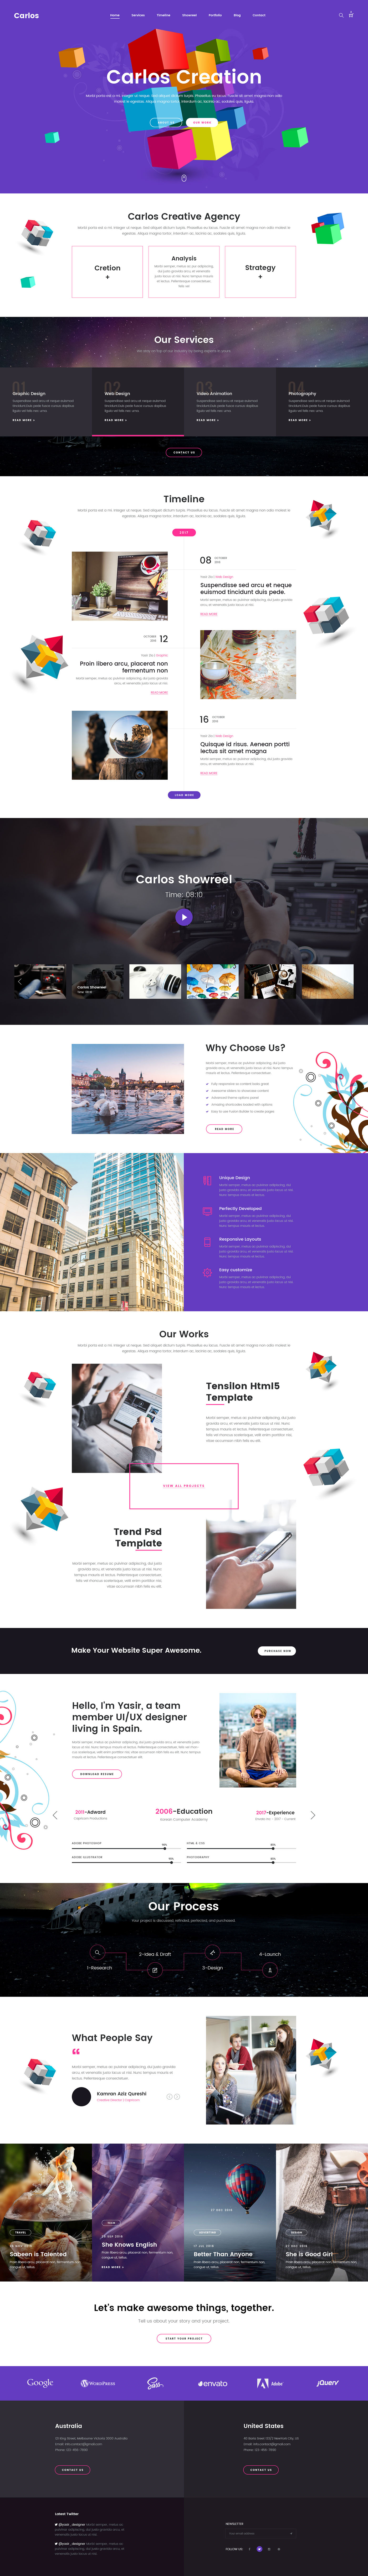 Carlos - Creative Agency Template